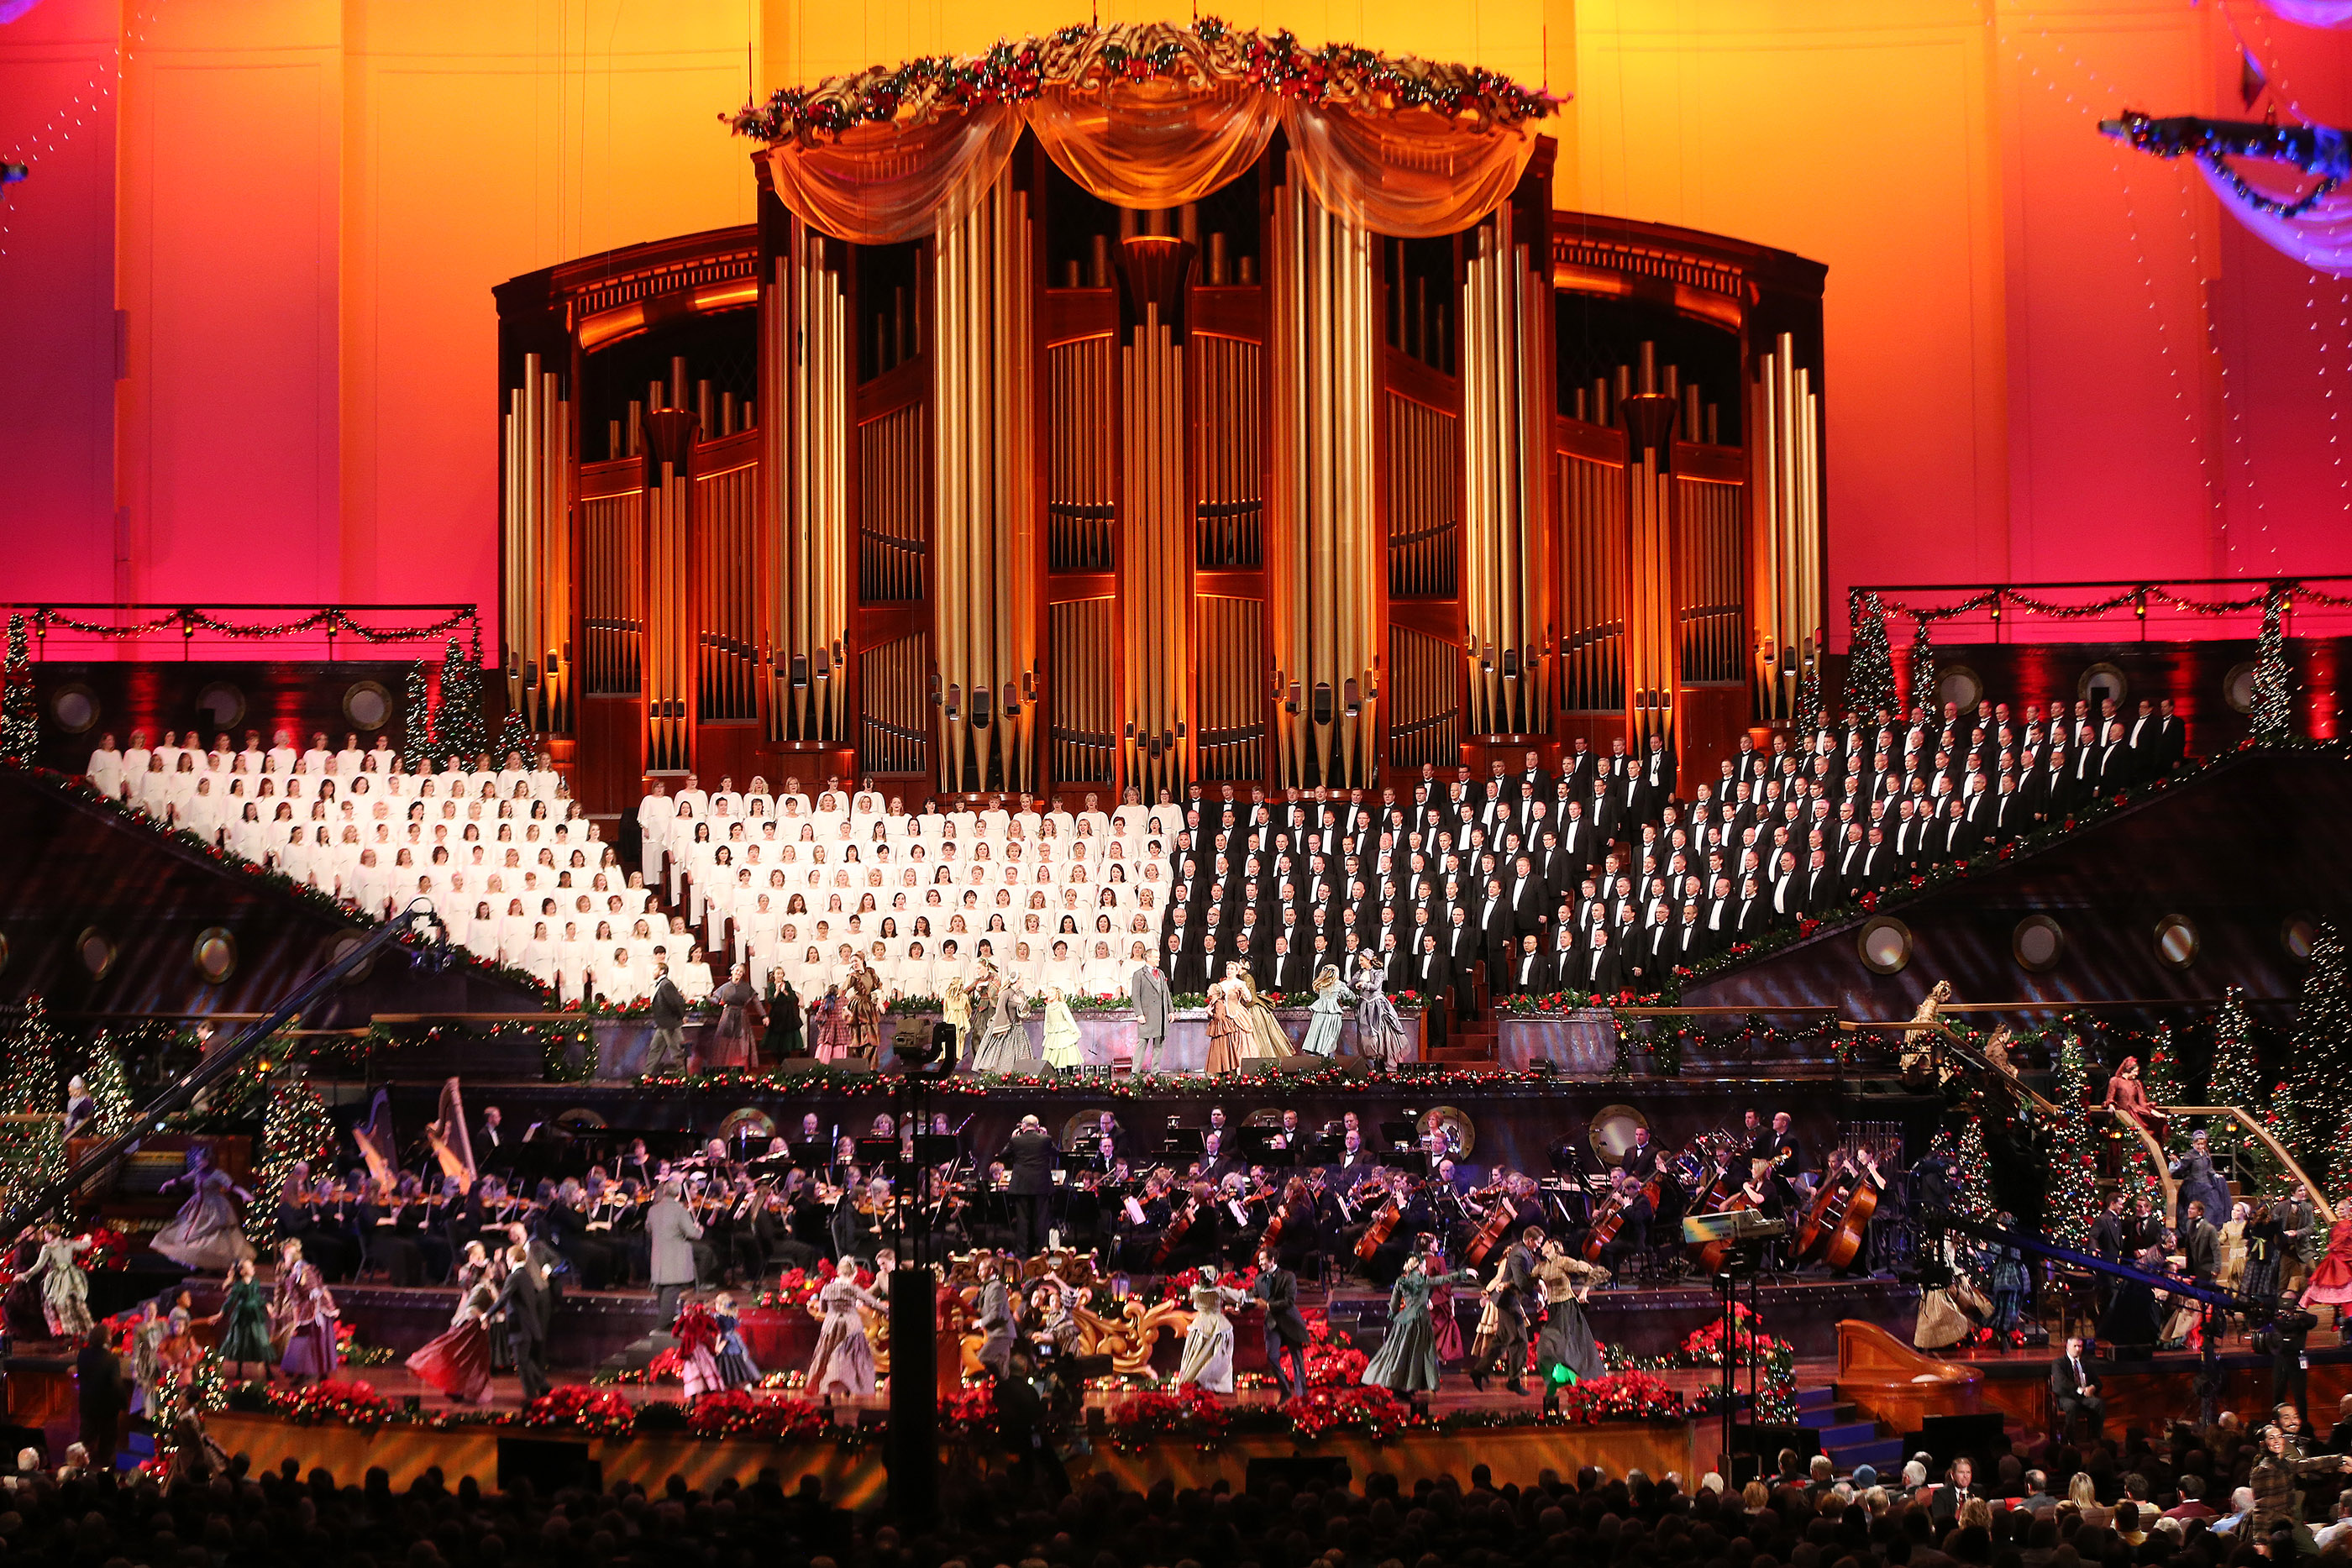 Dancers Perform As The Mormon Tabernacle Choir Sings During Their Christmas Concert In Salt Lake City On Thursday December 14 2017